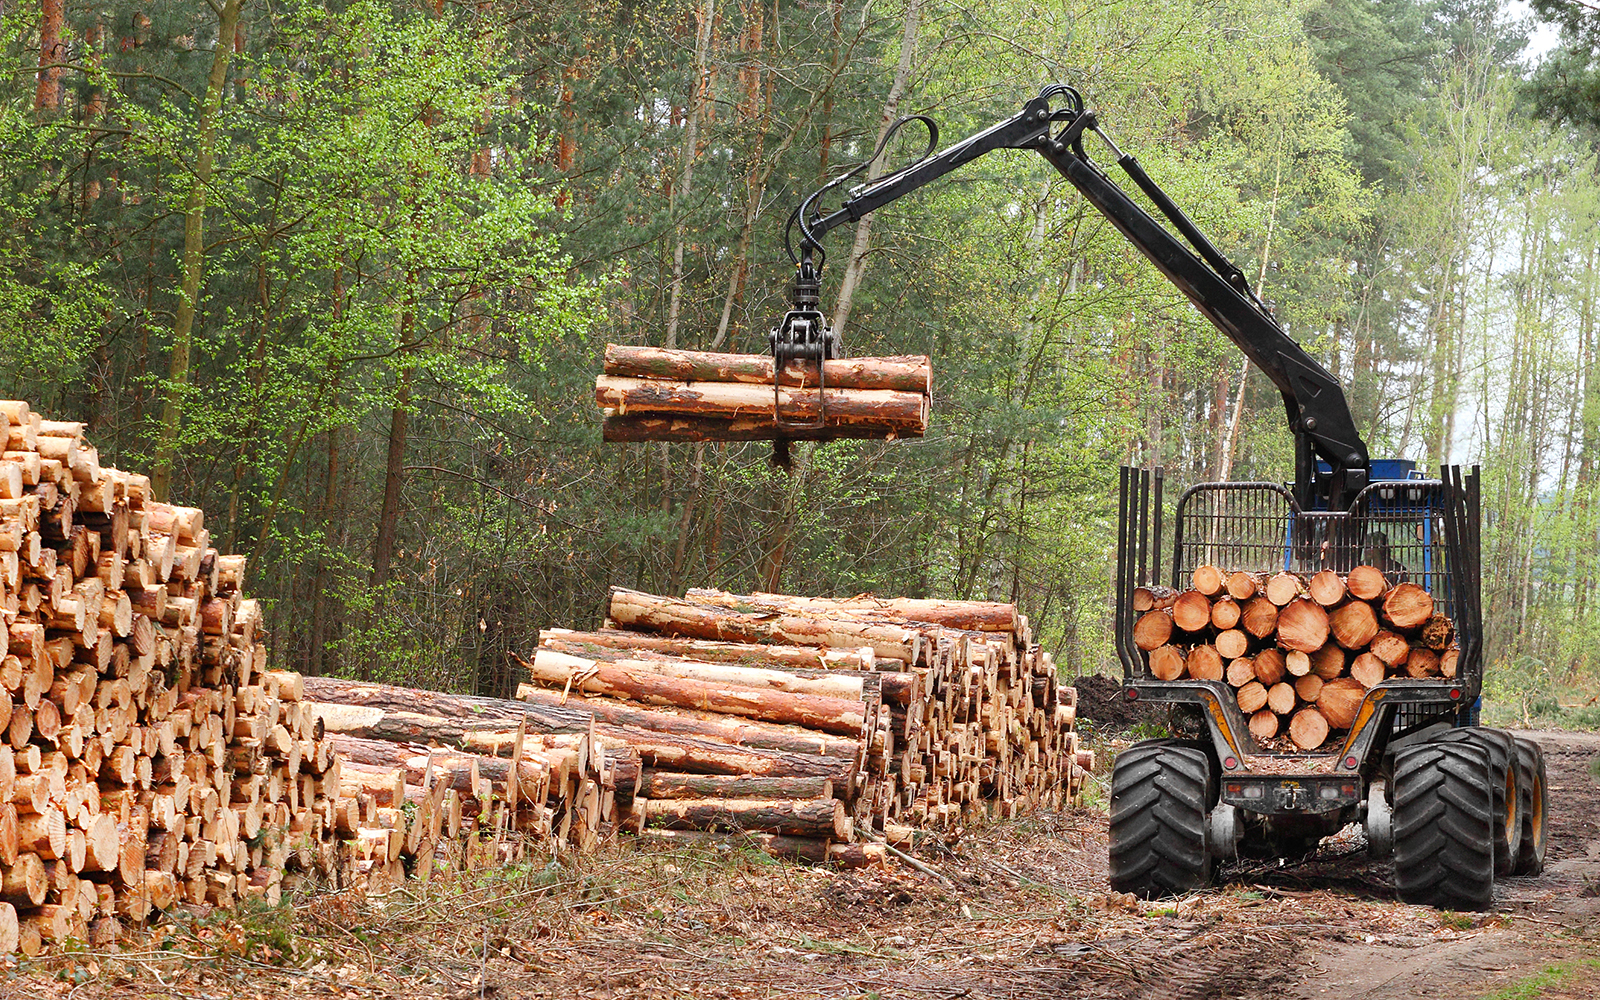 Stacks of logs at a forest logging site